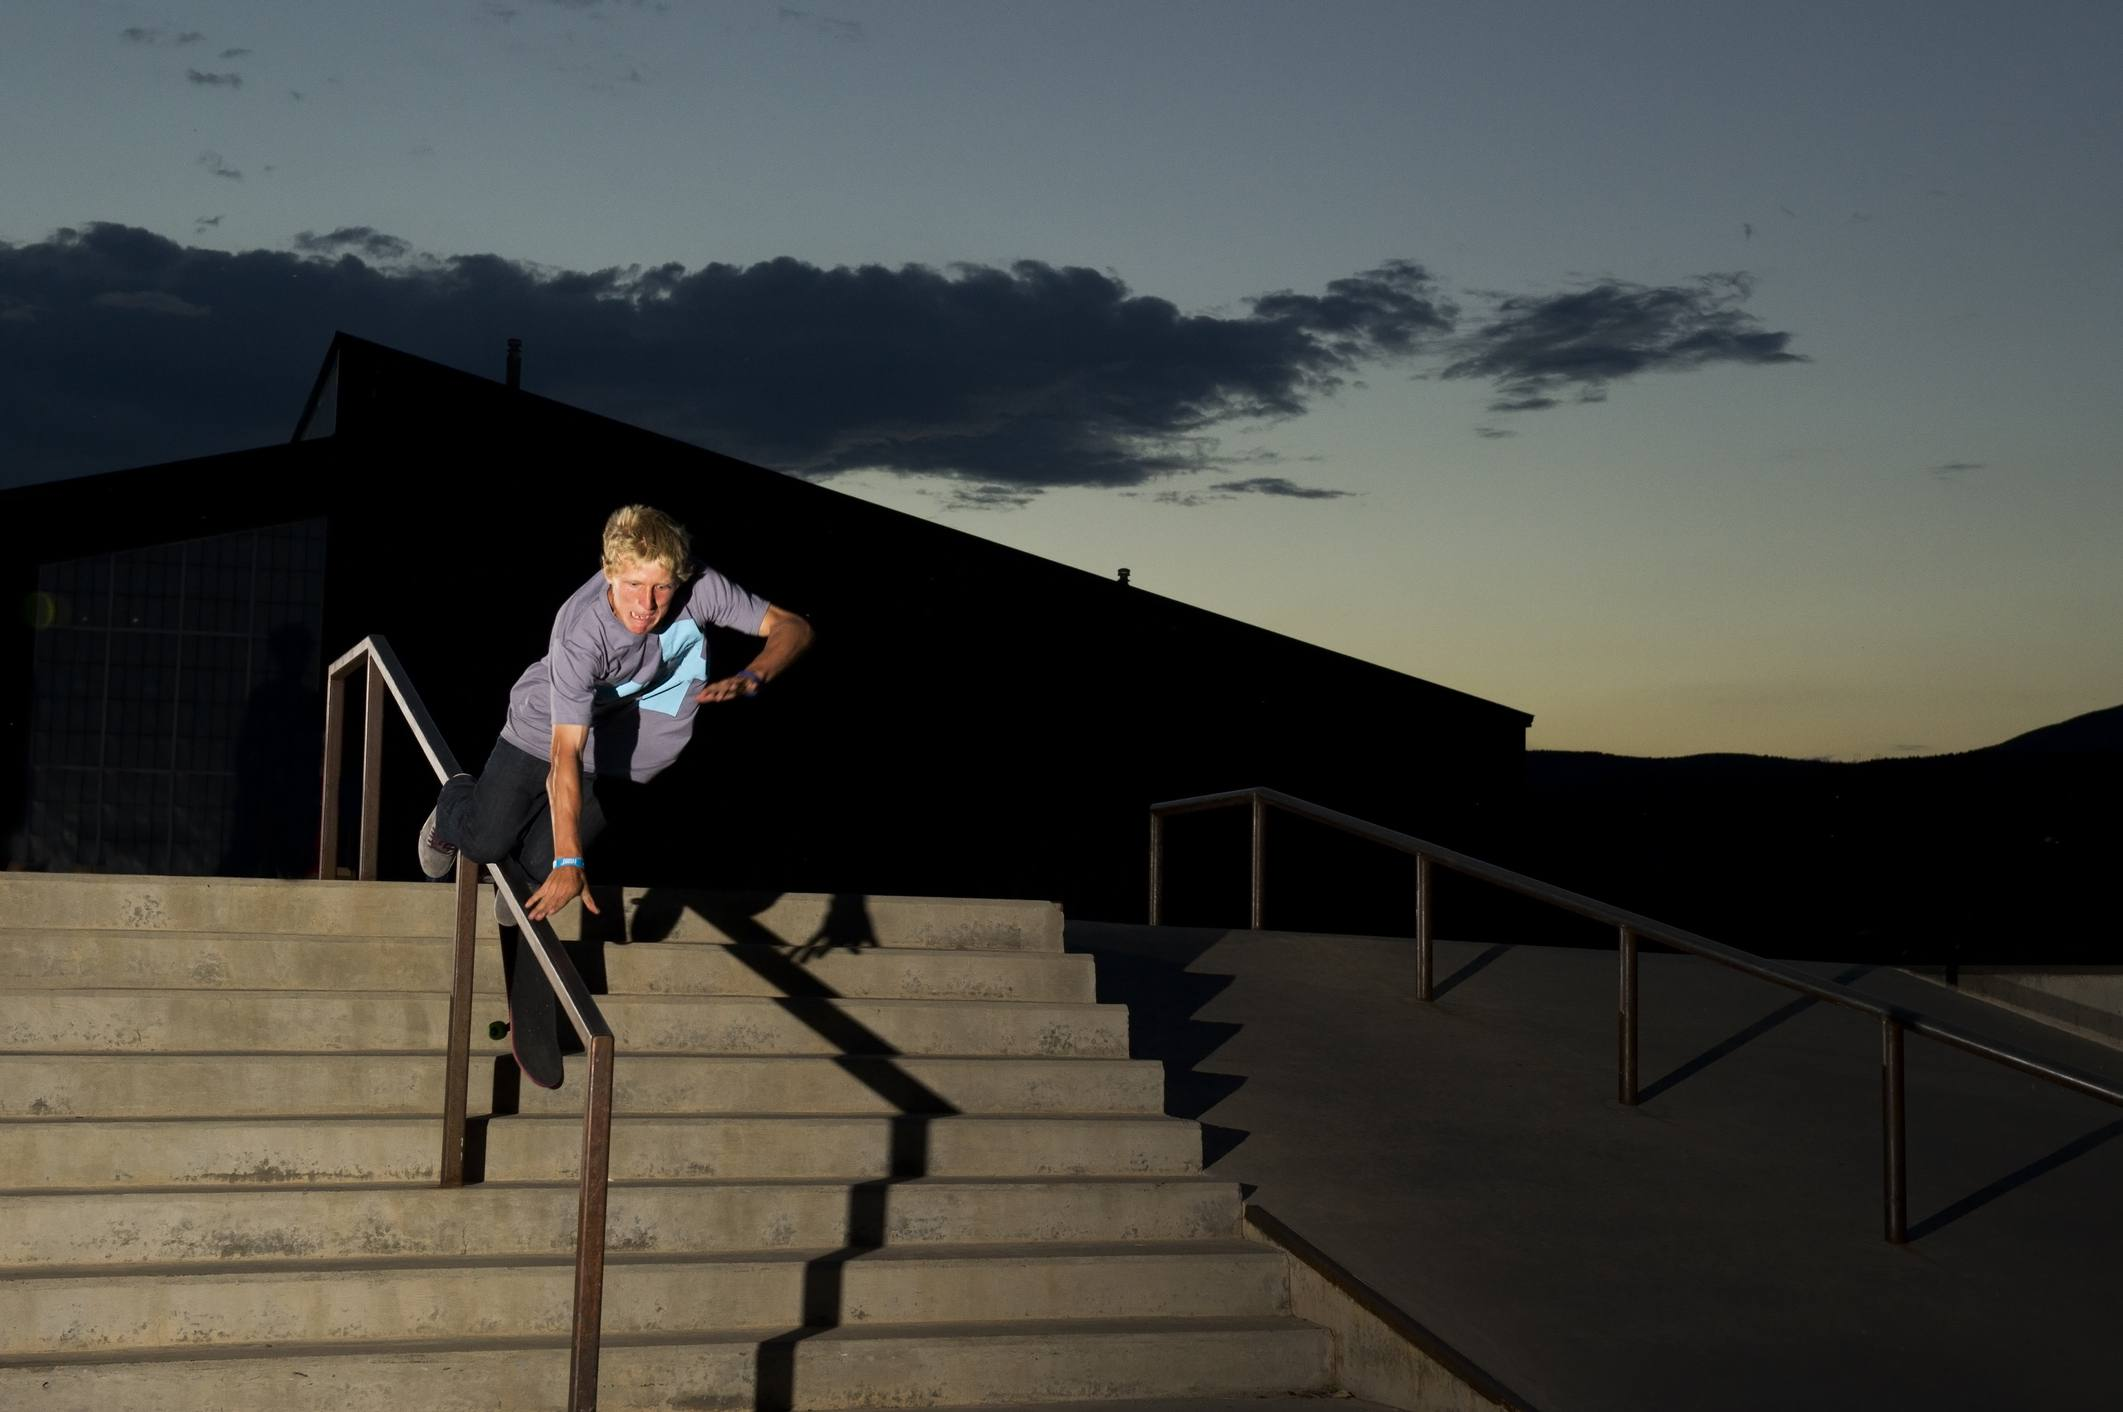 Skateboarder without helmet crashes down stairs